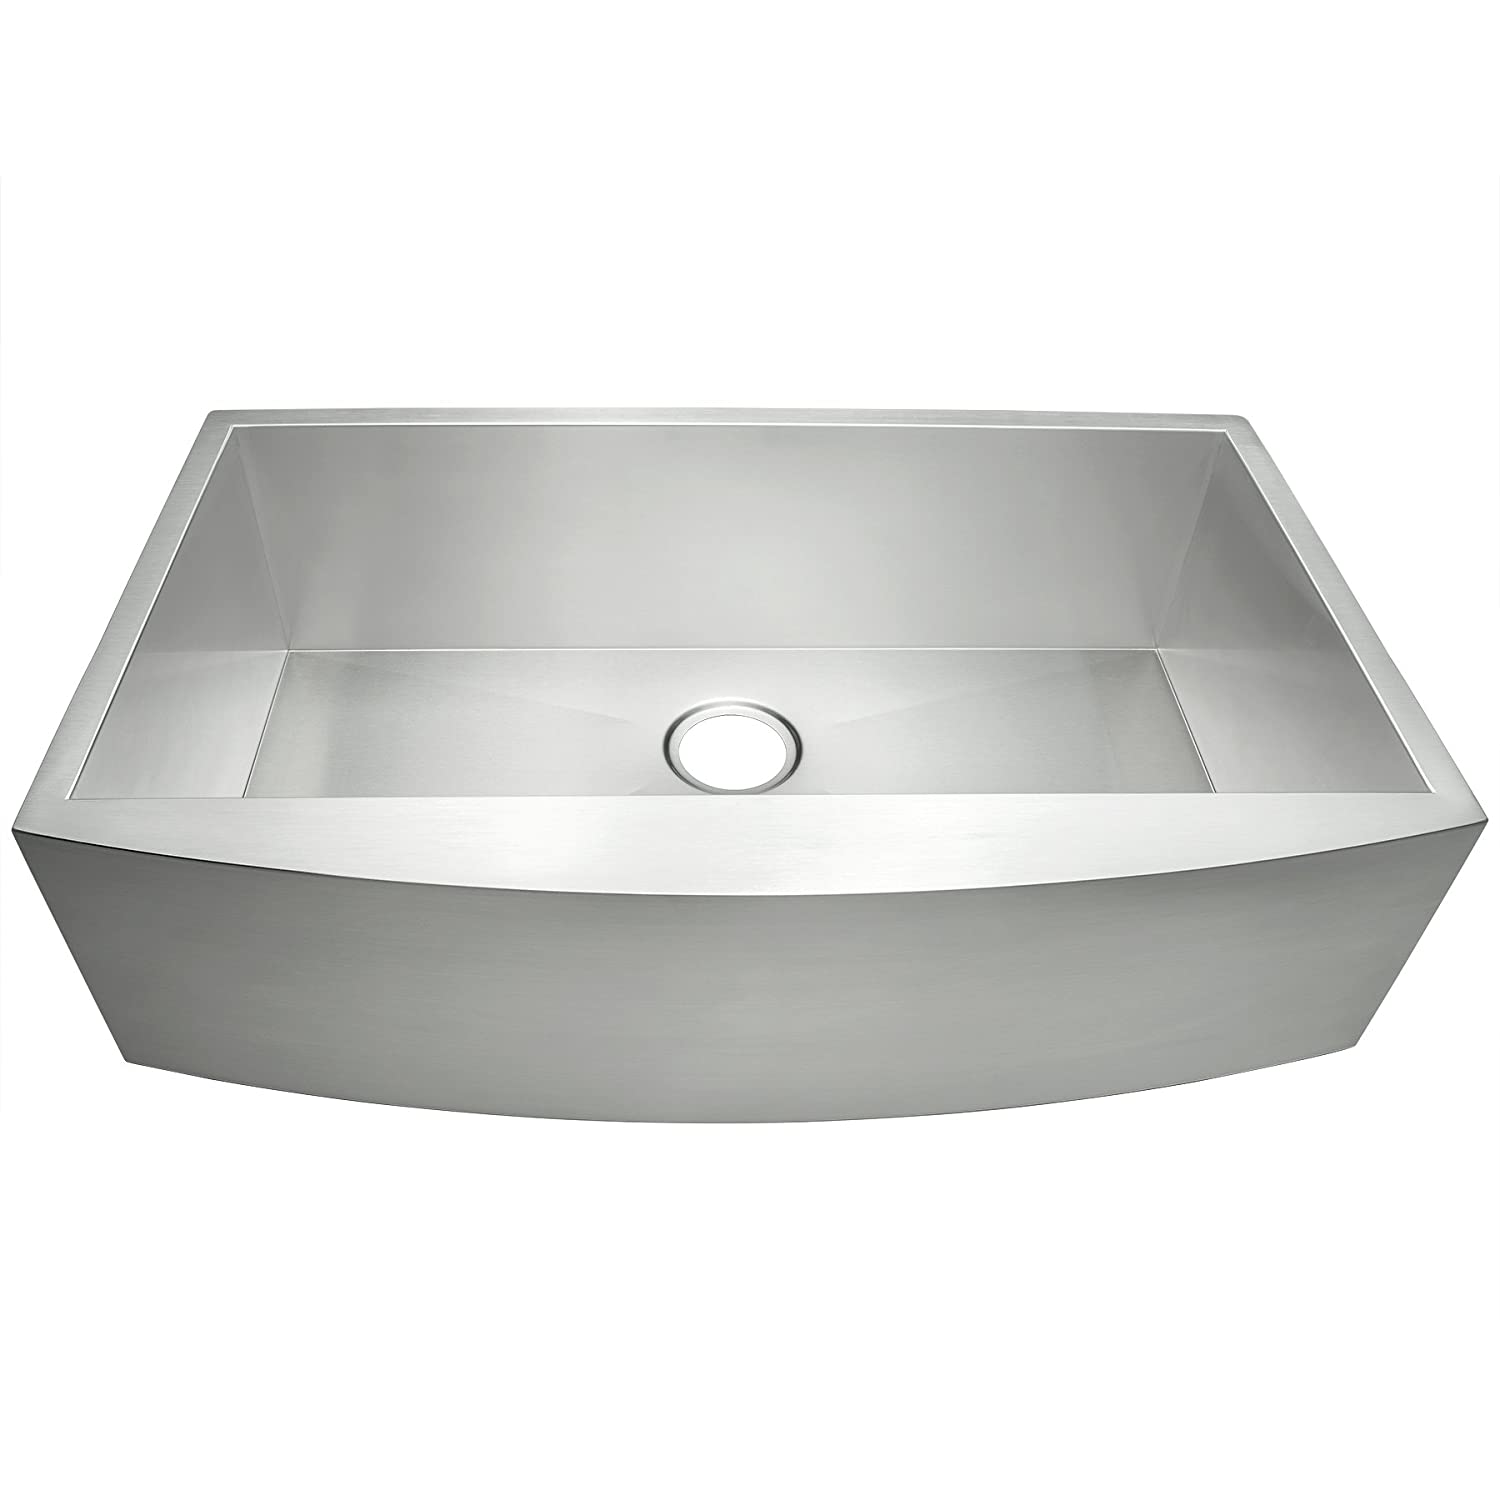 "AKDY 33"" x 20"" x 9"" Single Bowls 18 Gauge Undermount Apron"